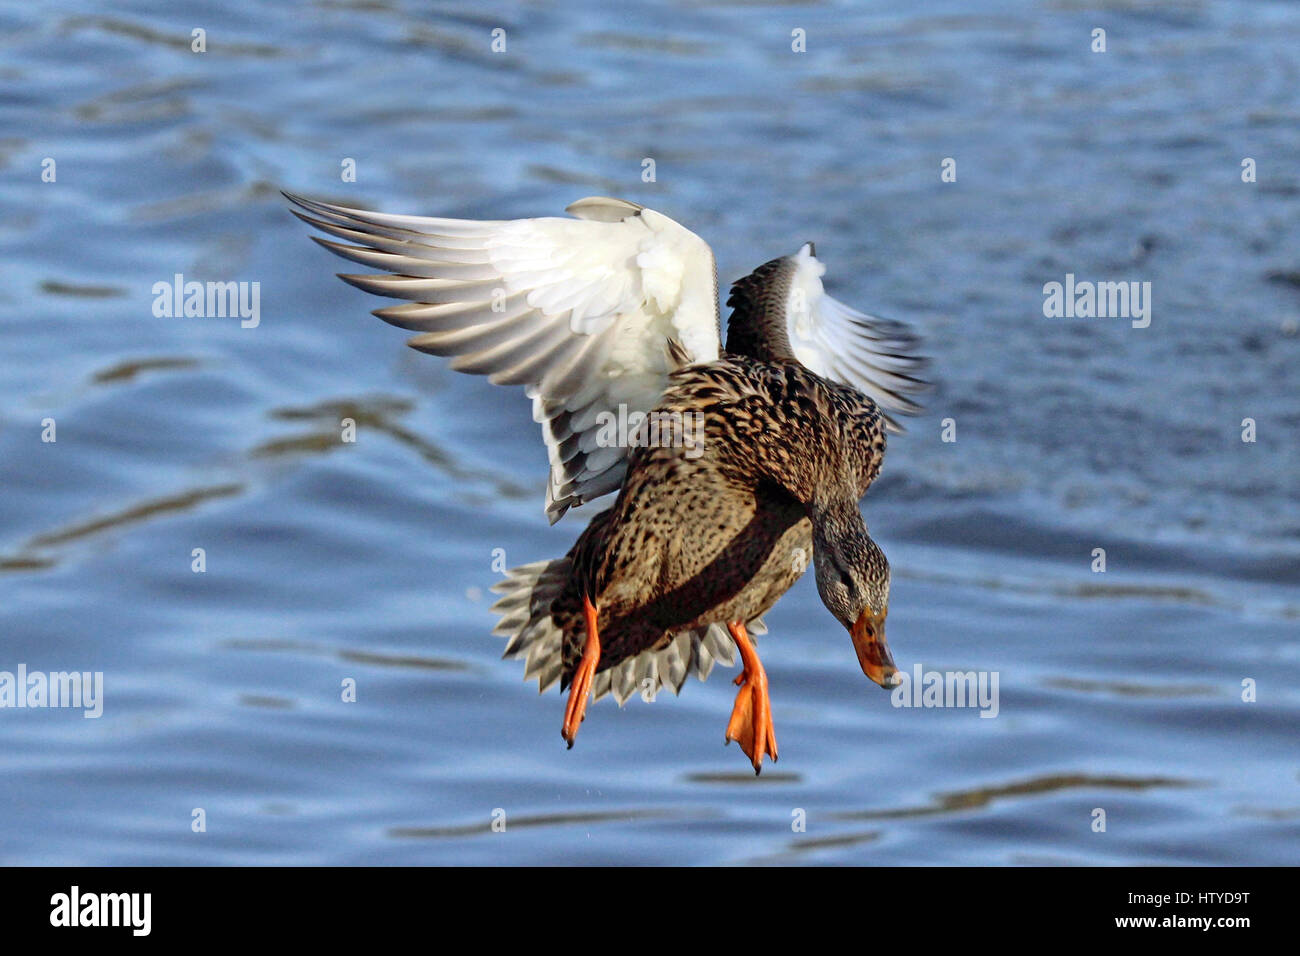 A Female Mallard Duck Flying In To Land On A Pond Stock Photo